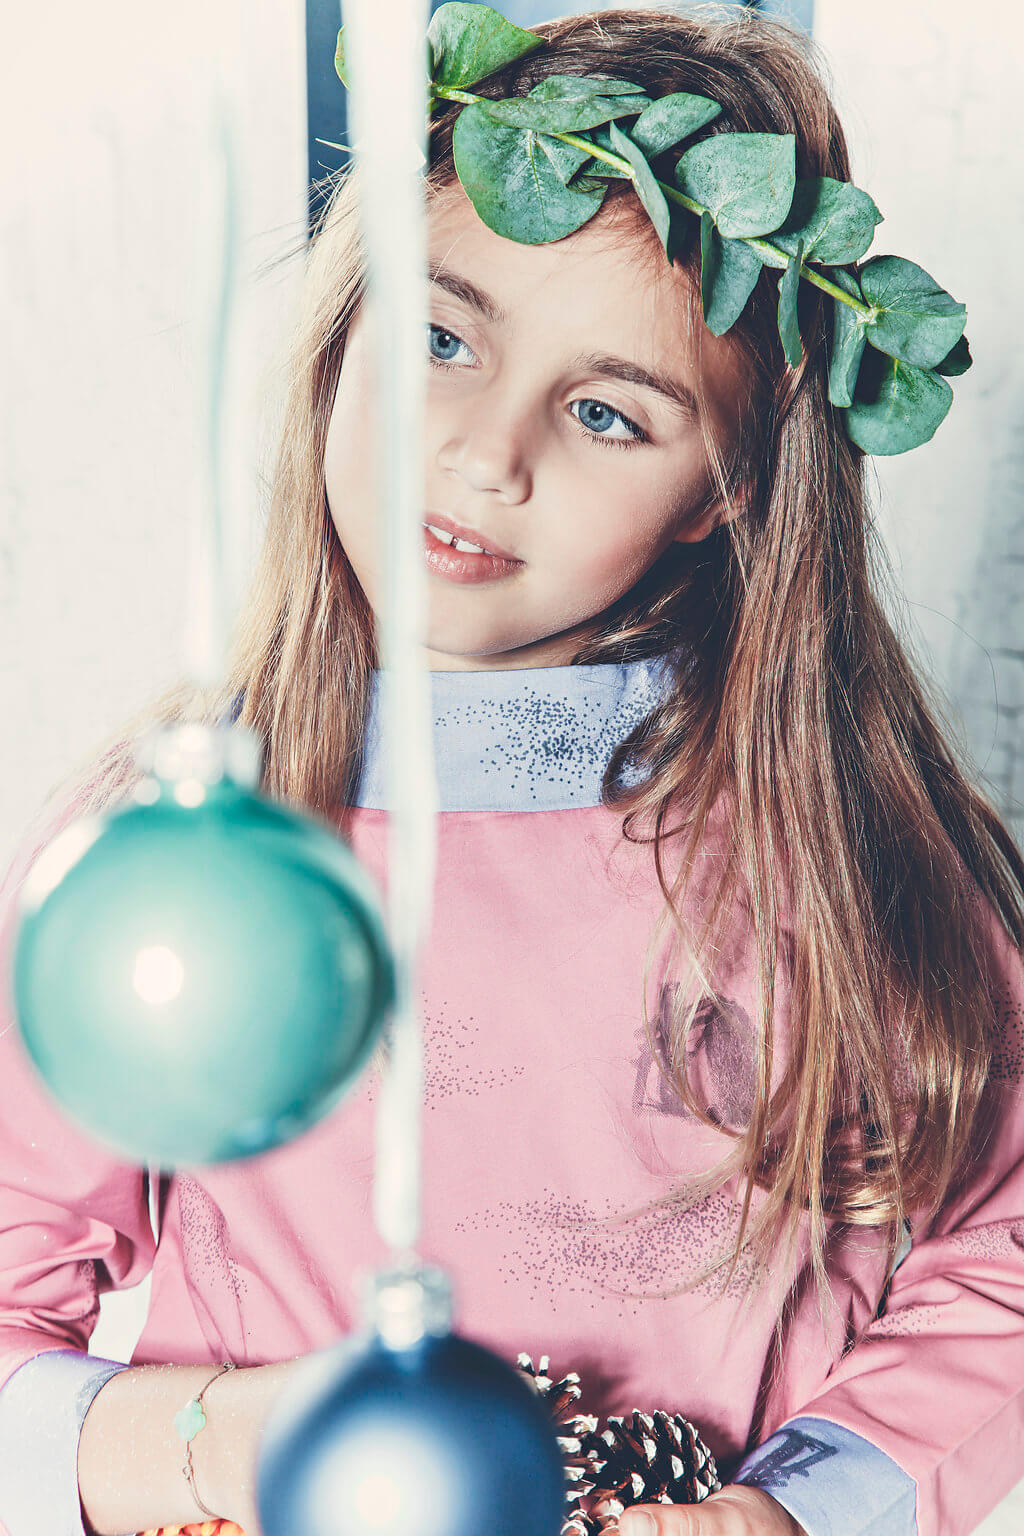 All about Christmas - photoshoot